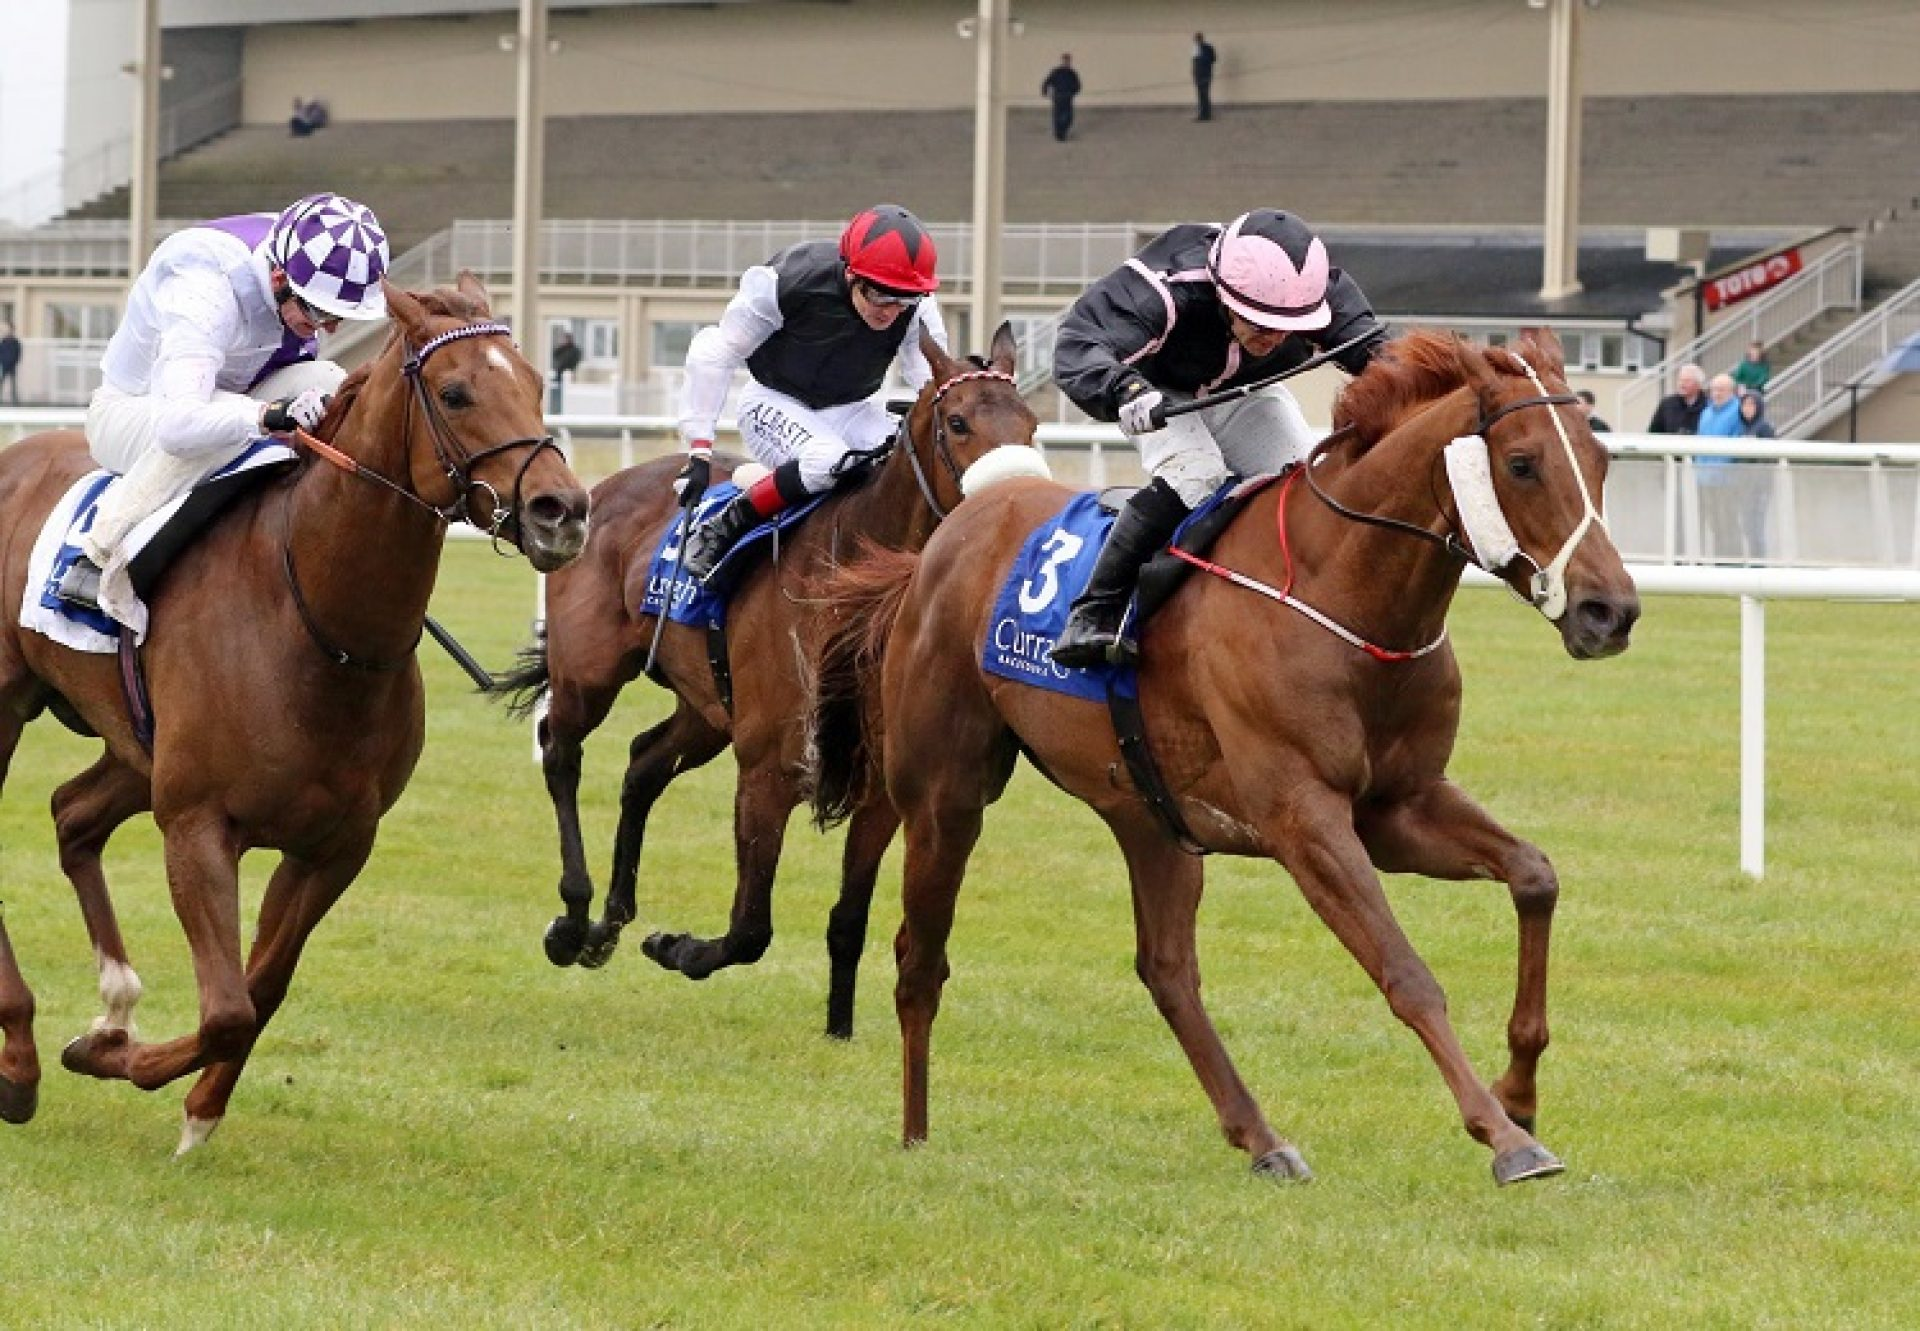 Onenightidreamed (Footstepsinthesand) winning the G3 Gladness Stakes at the Curragh